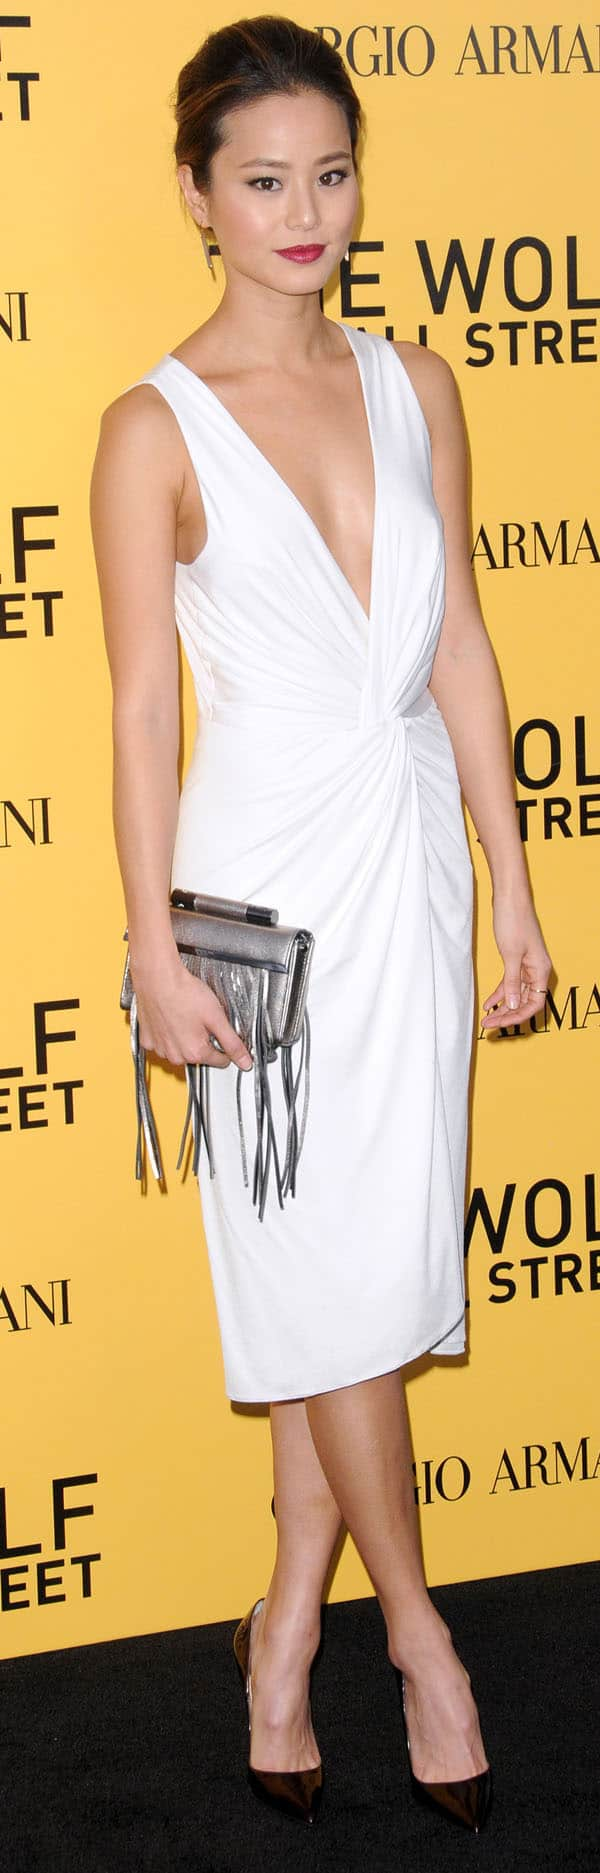 US Premiere of The Wolf Of Wall Street